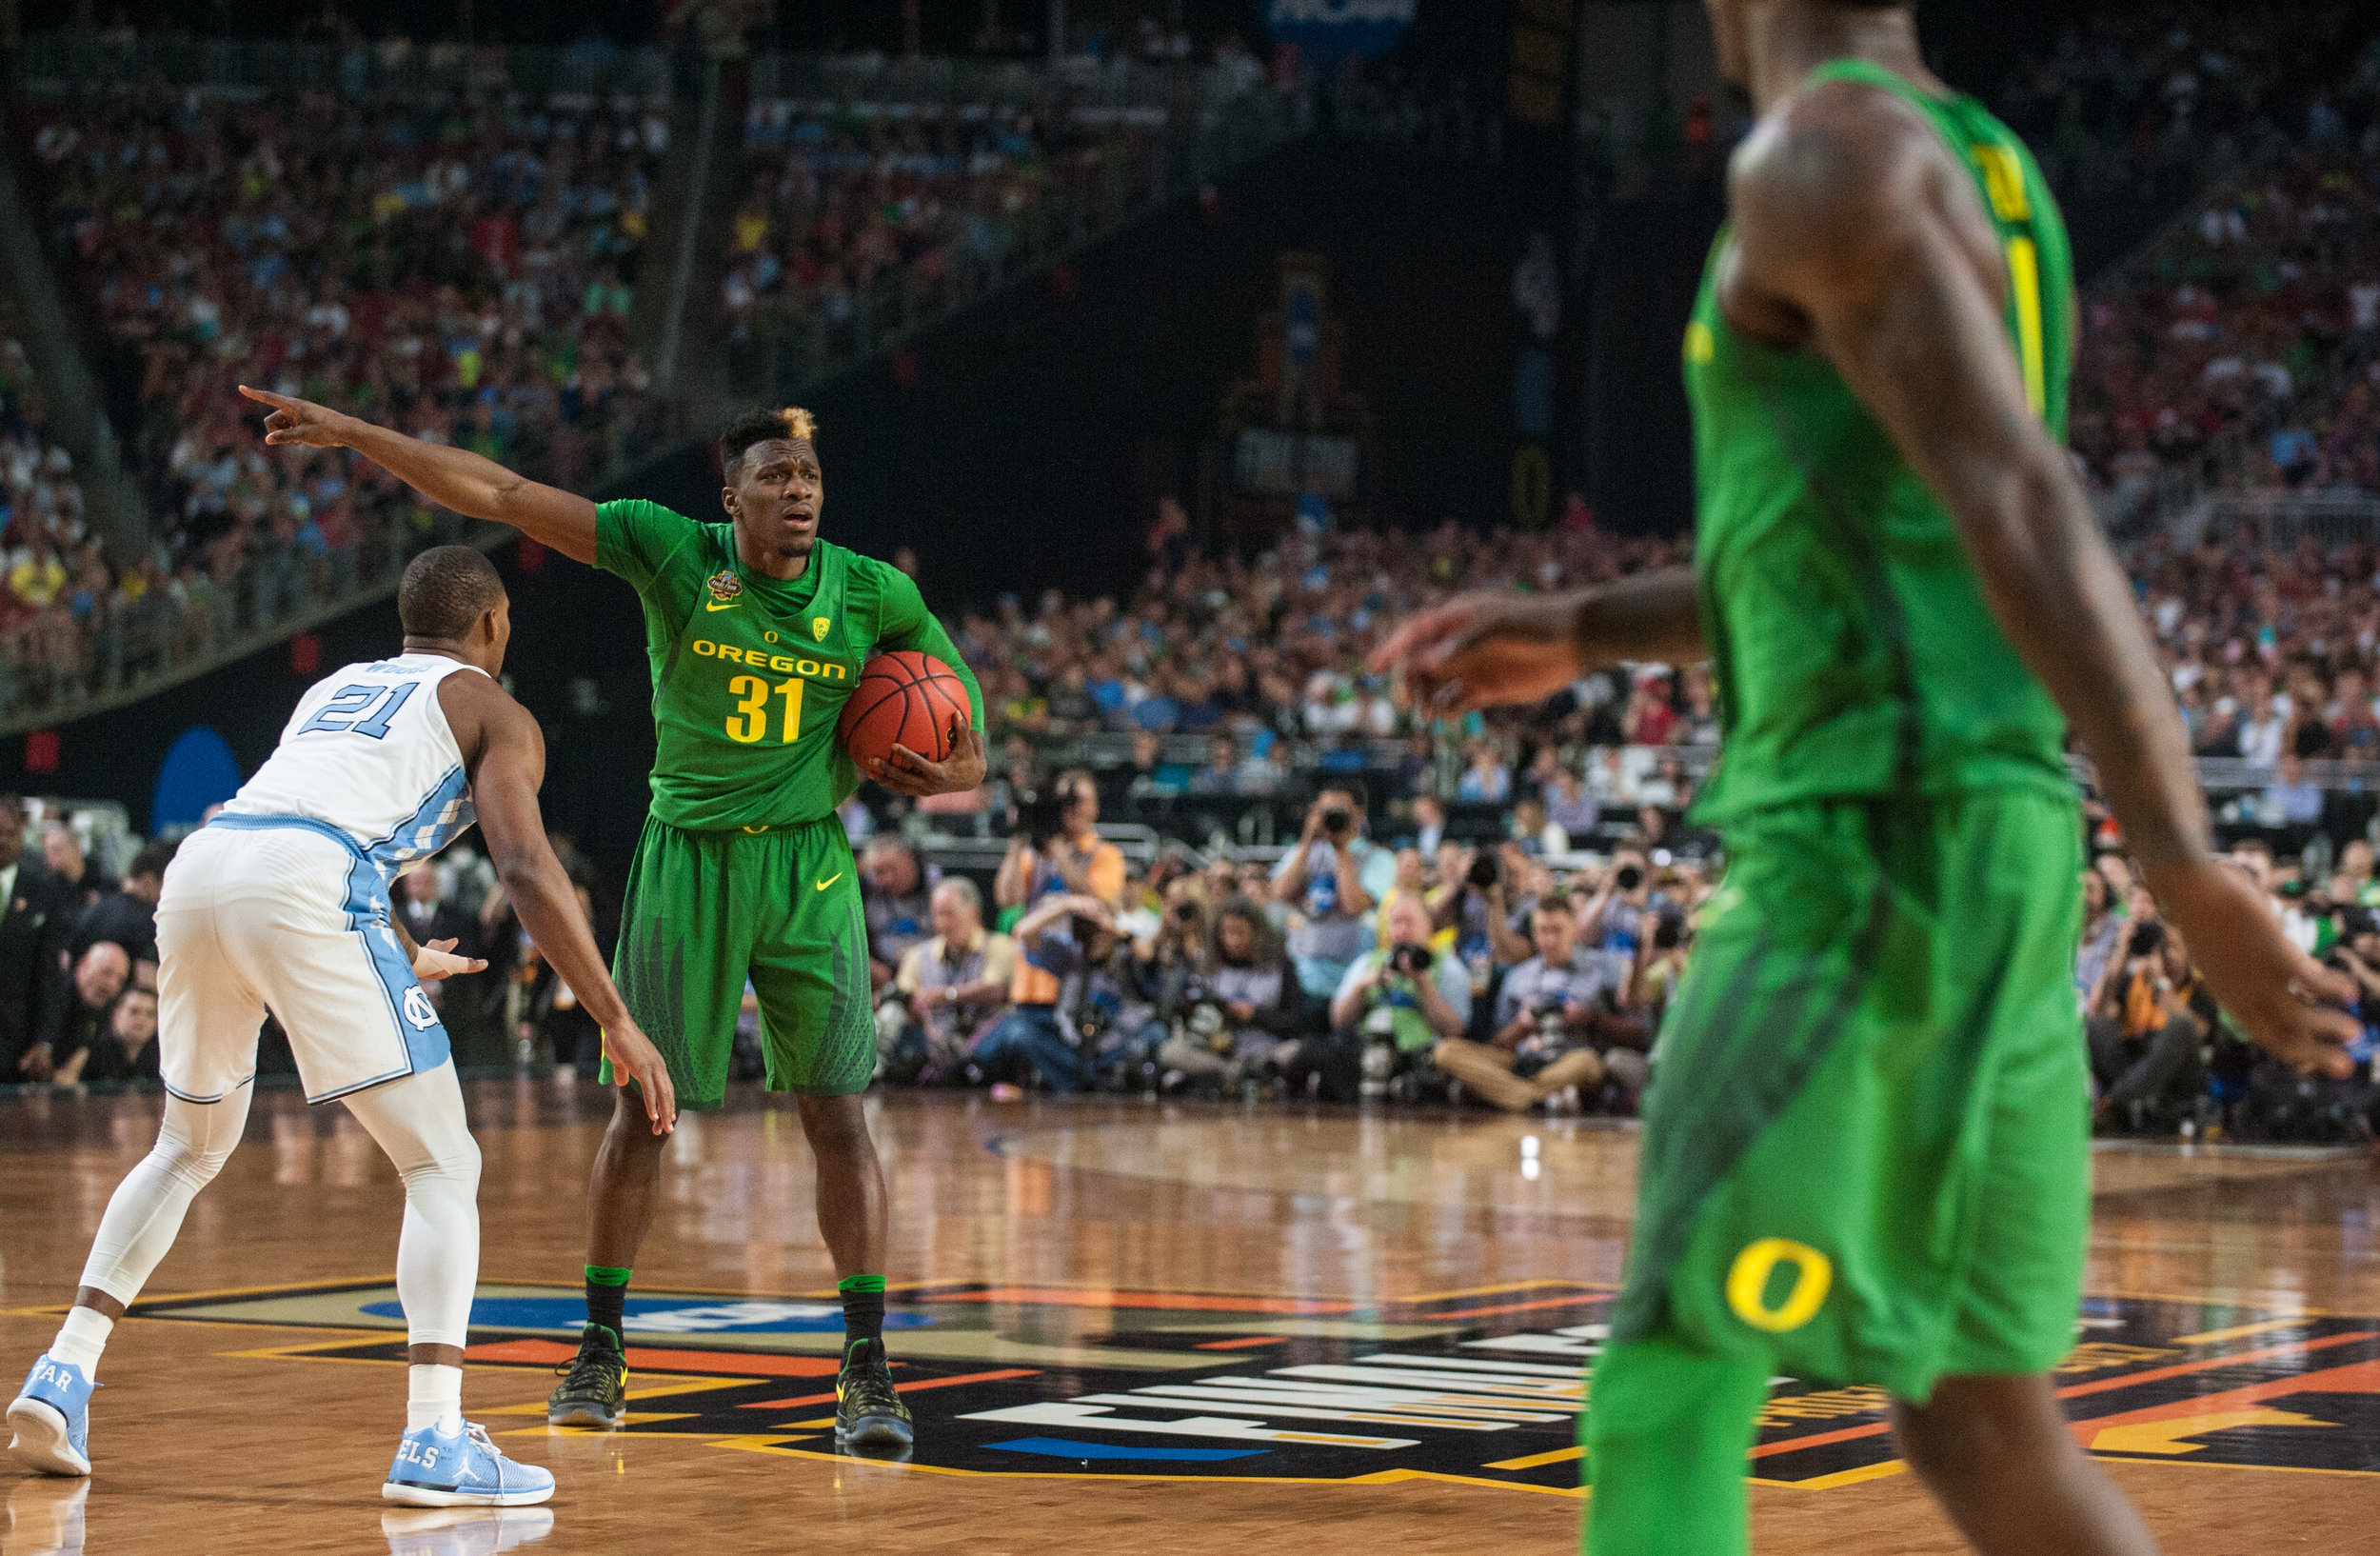 17.03.31.emg.an.final.four.oregon.vs.north.carolina-17.jpg